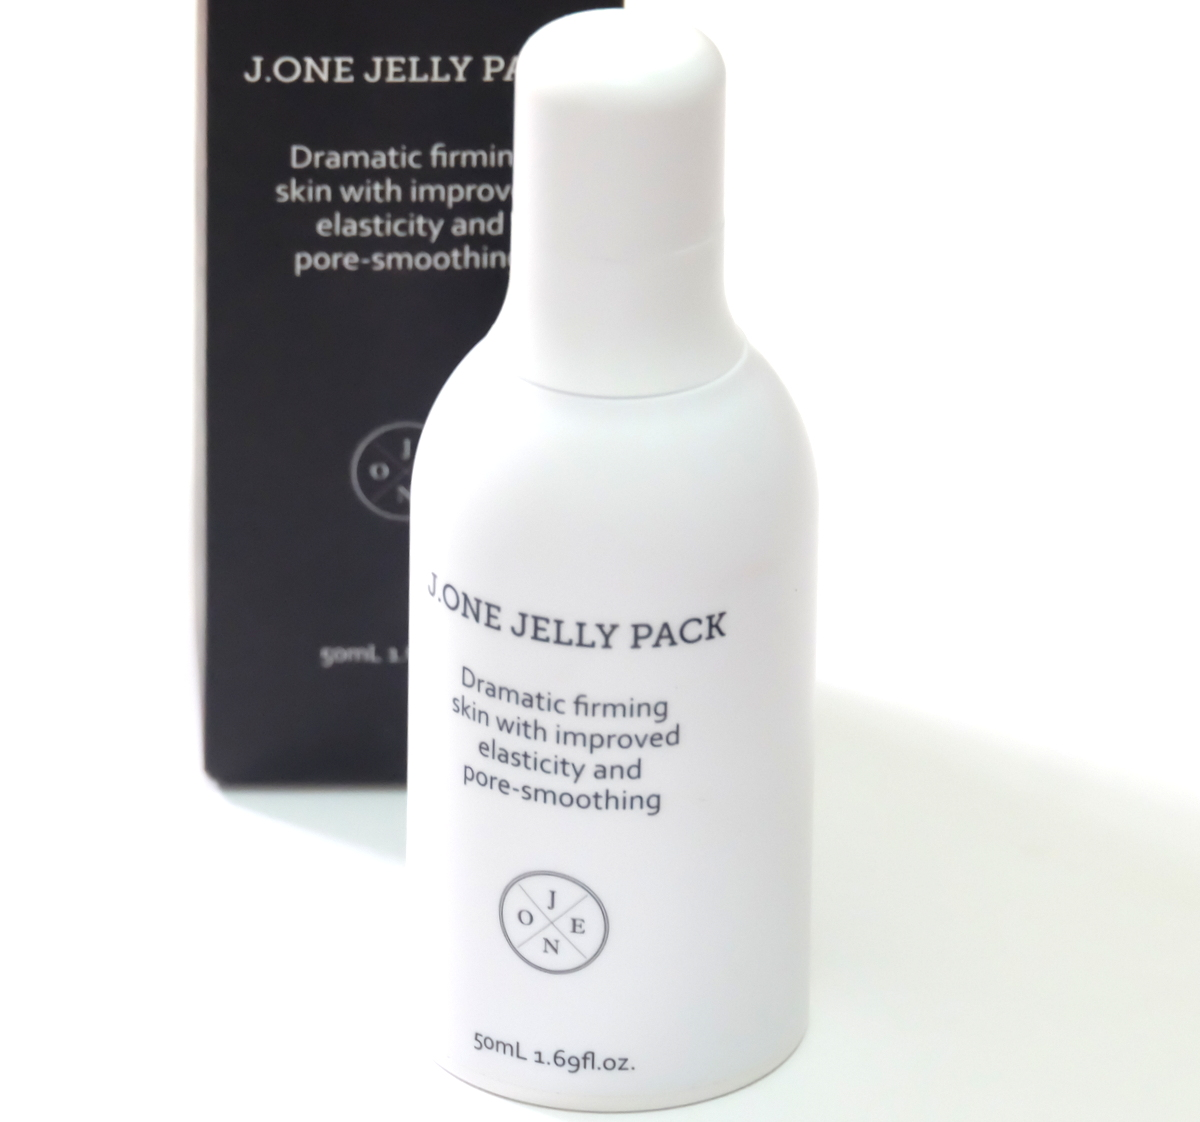 J.ONE COSMETICS : J.ONE JELLY PACK, J.ONE HANA CREAM and J.ONE JELLY PACK VITA MASK REVIEW ...